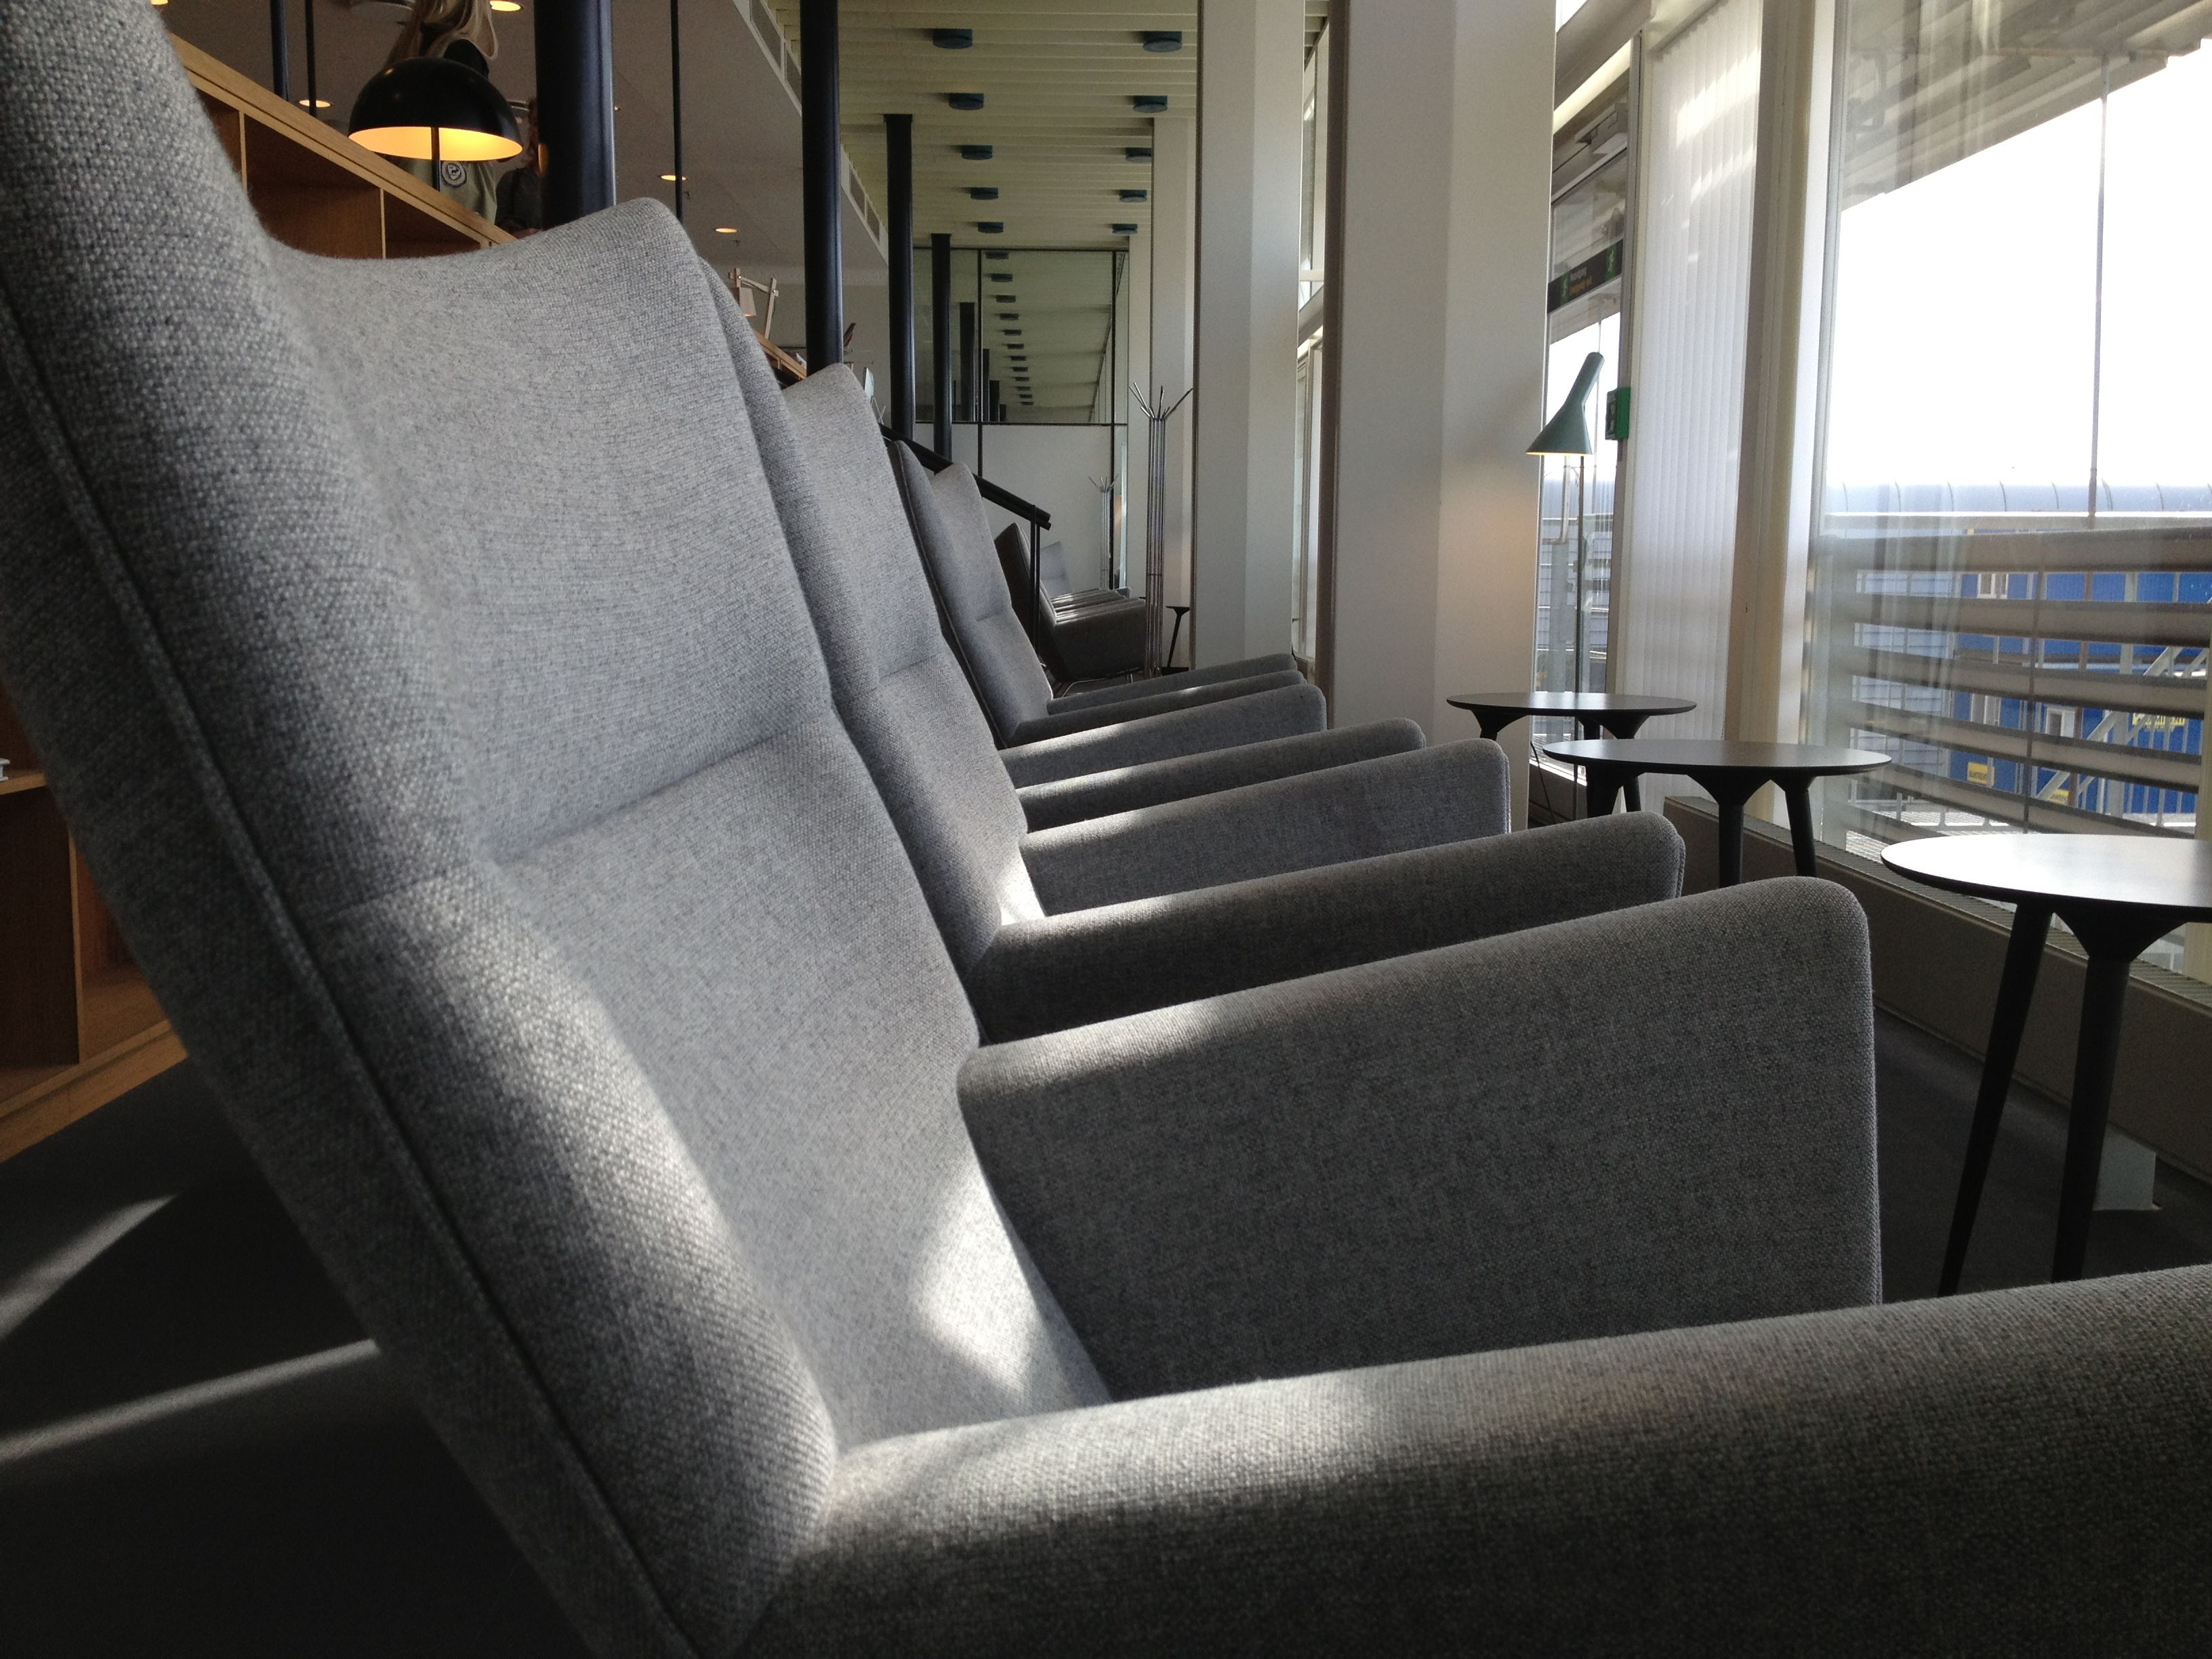 CPH Apartment Lounge in Copenhagen Airport. Relax, have a cup of coffee and a danish - and enjoy the view over the apron from the comfortable Carl Hansen CH445 Wingchair :)